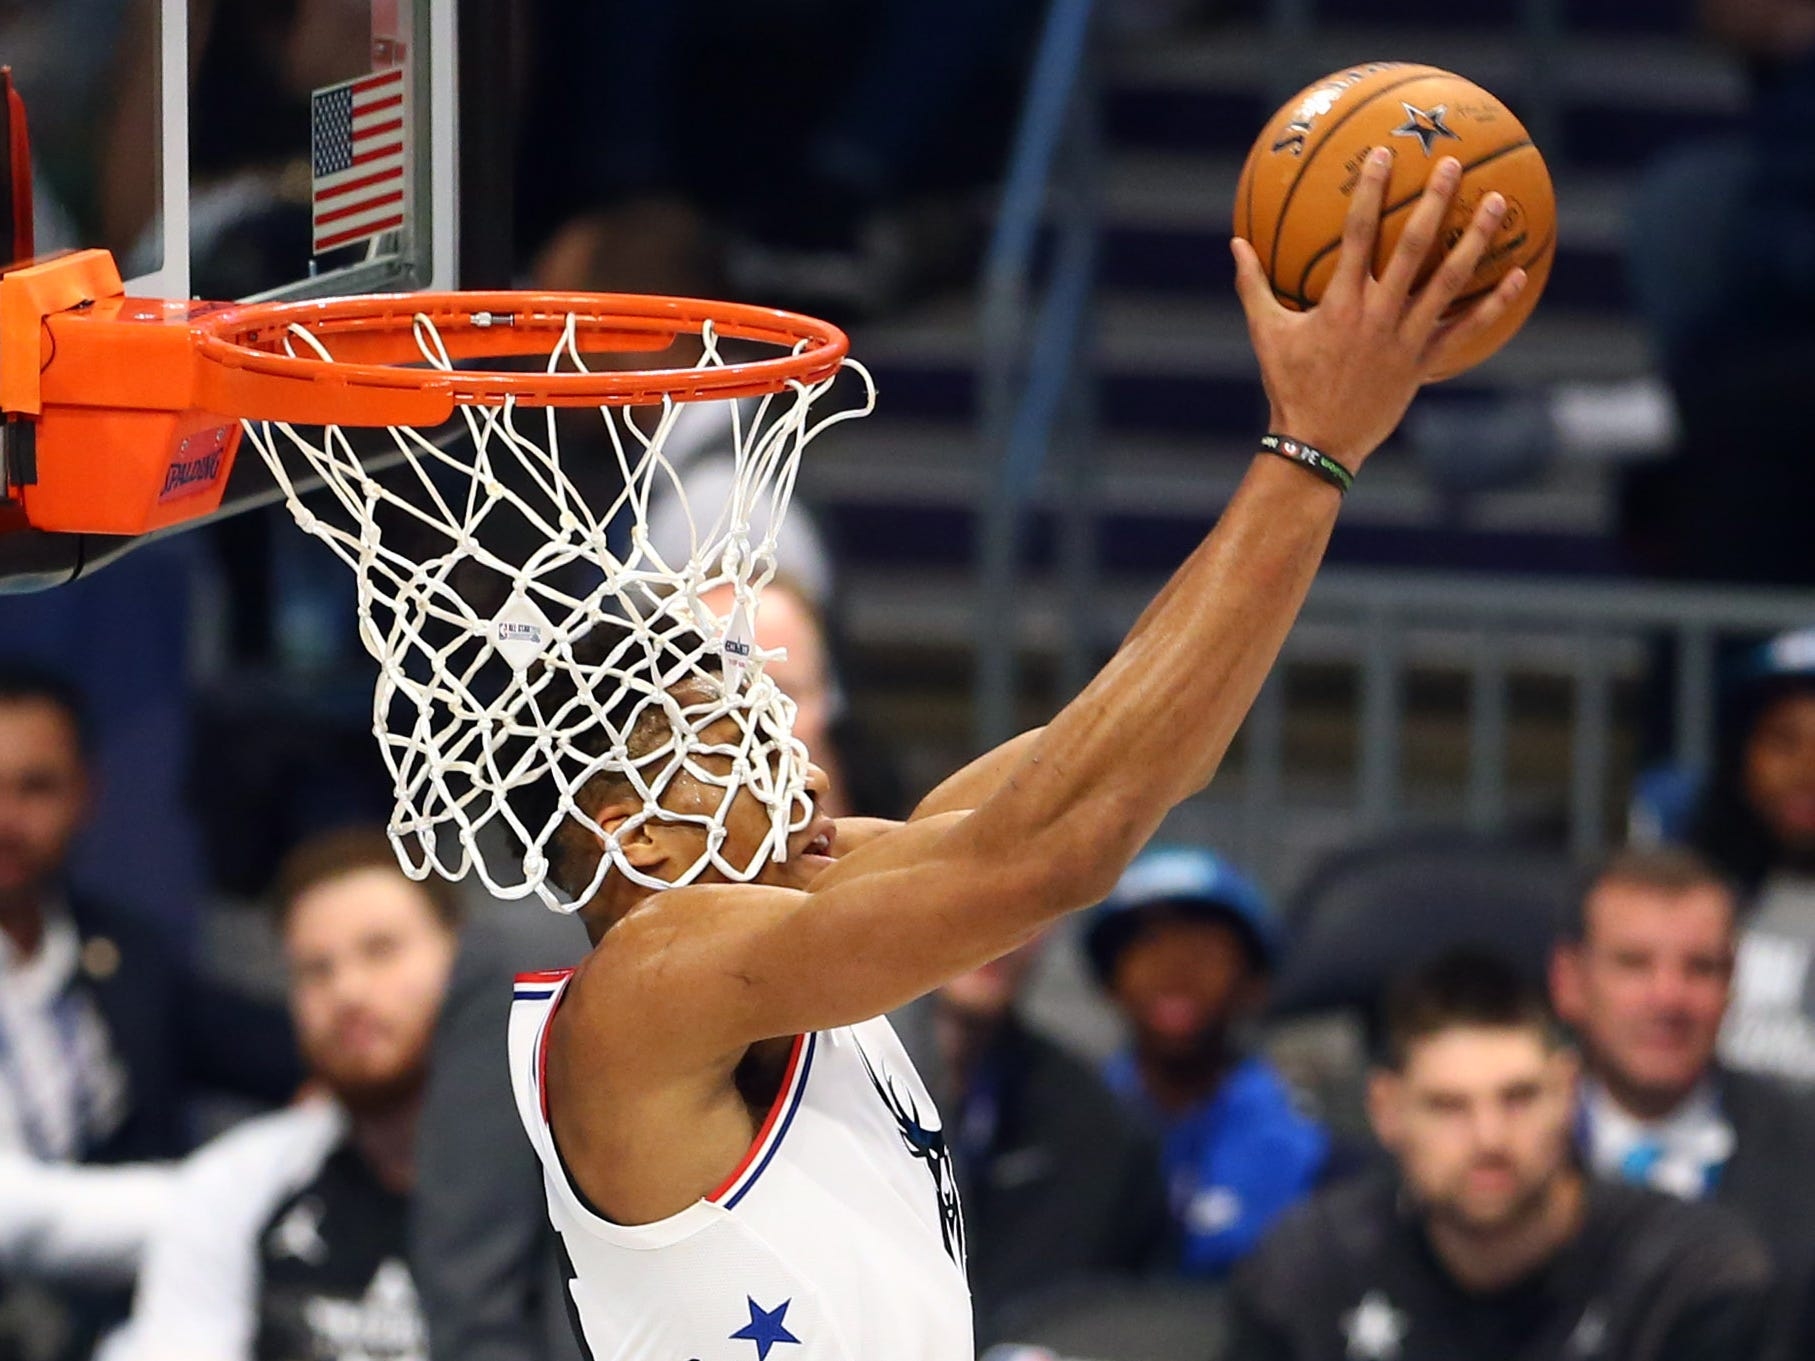 Giannis Antetokounmpo dunks the ball during the All-Star Game.